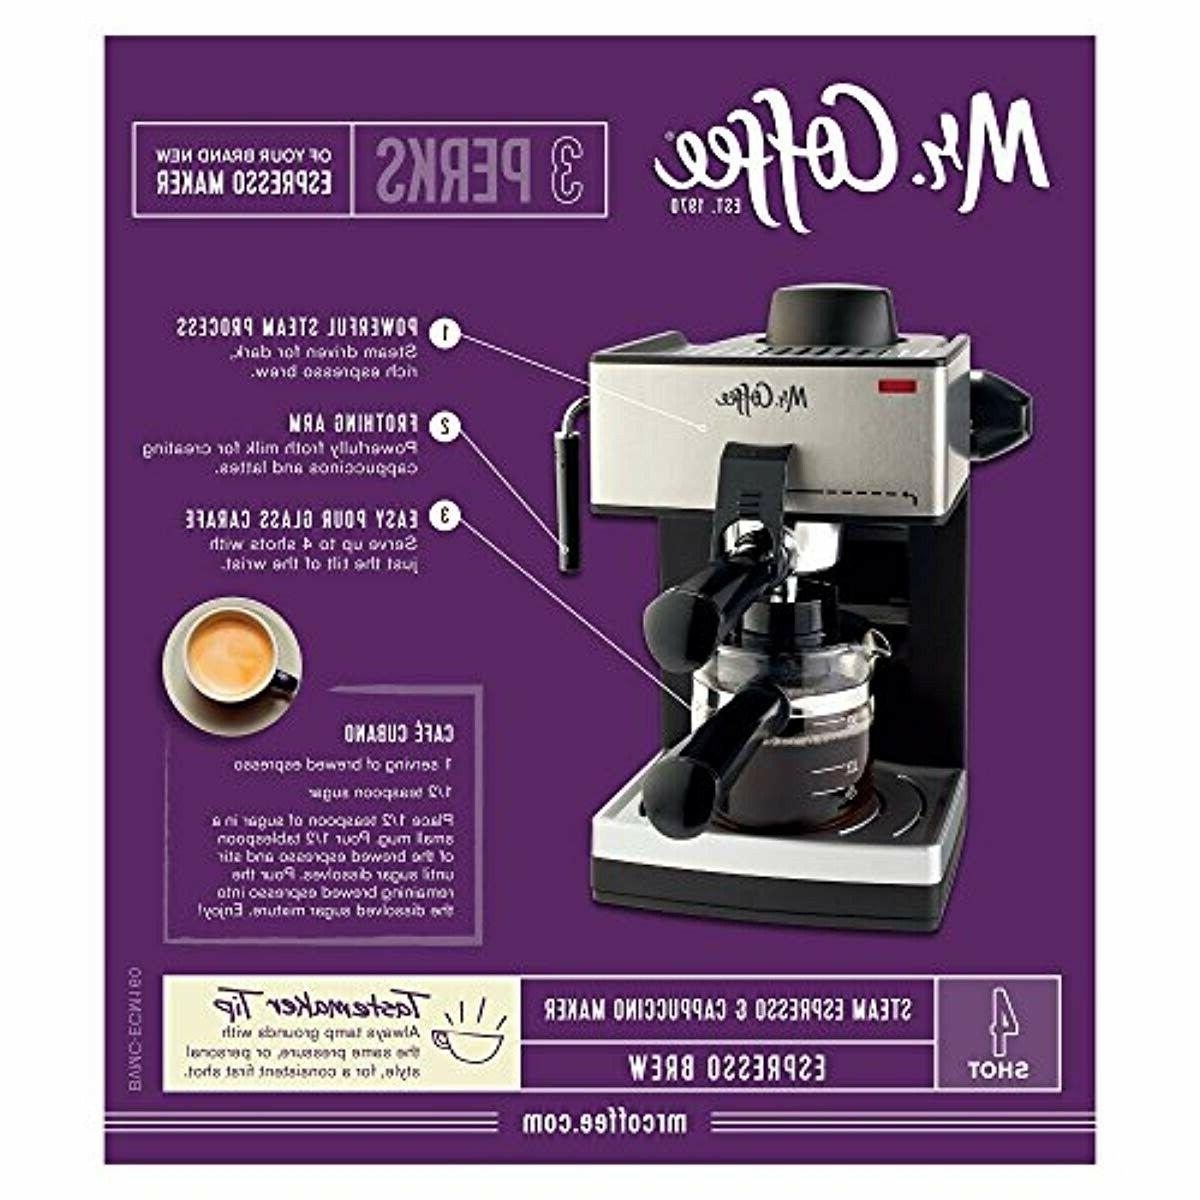 Home Espresso Machine Expresso Steam Frothing NEW